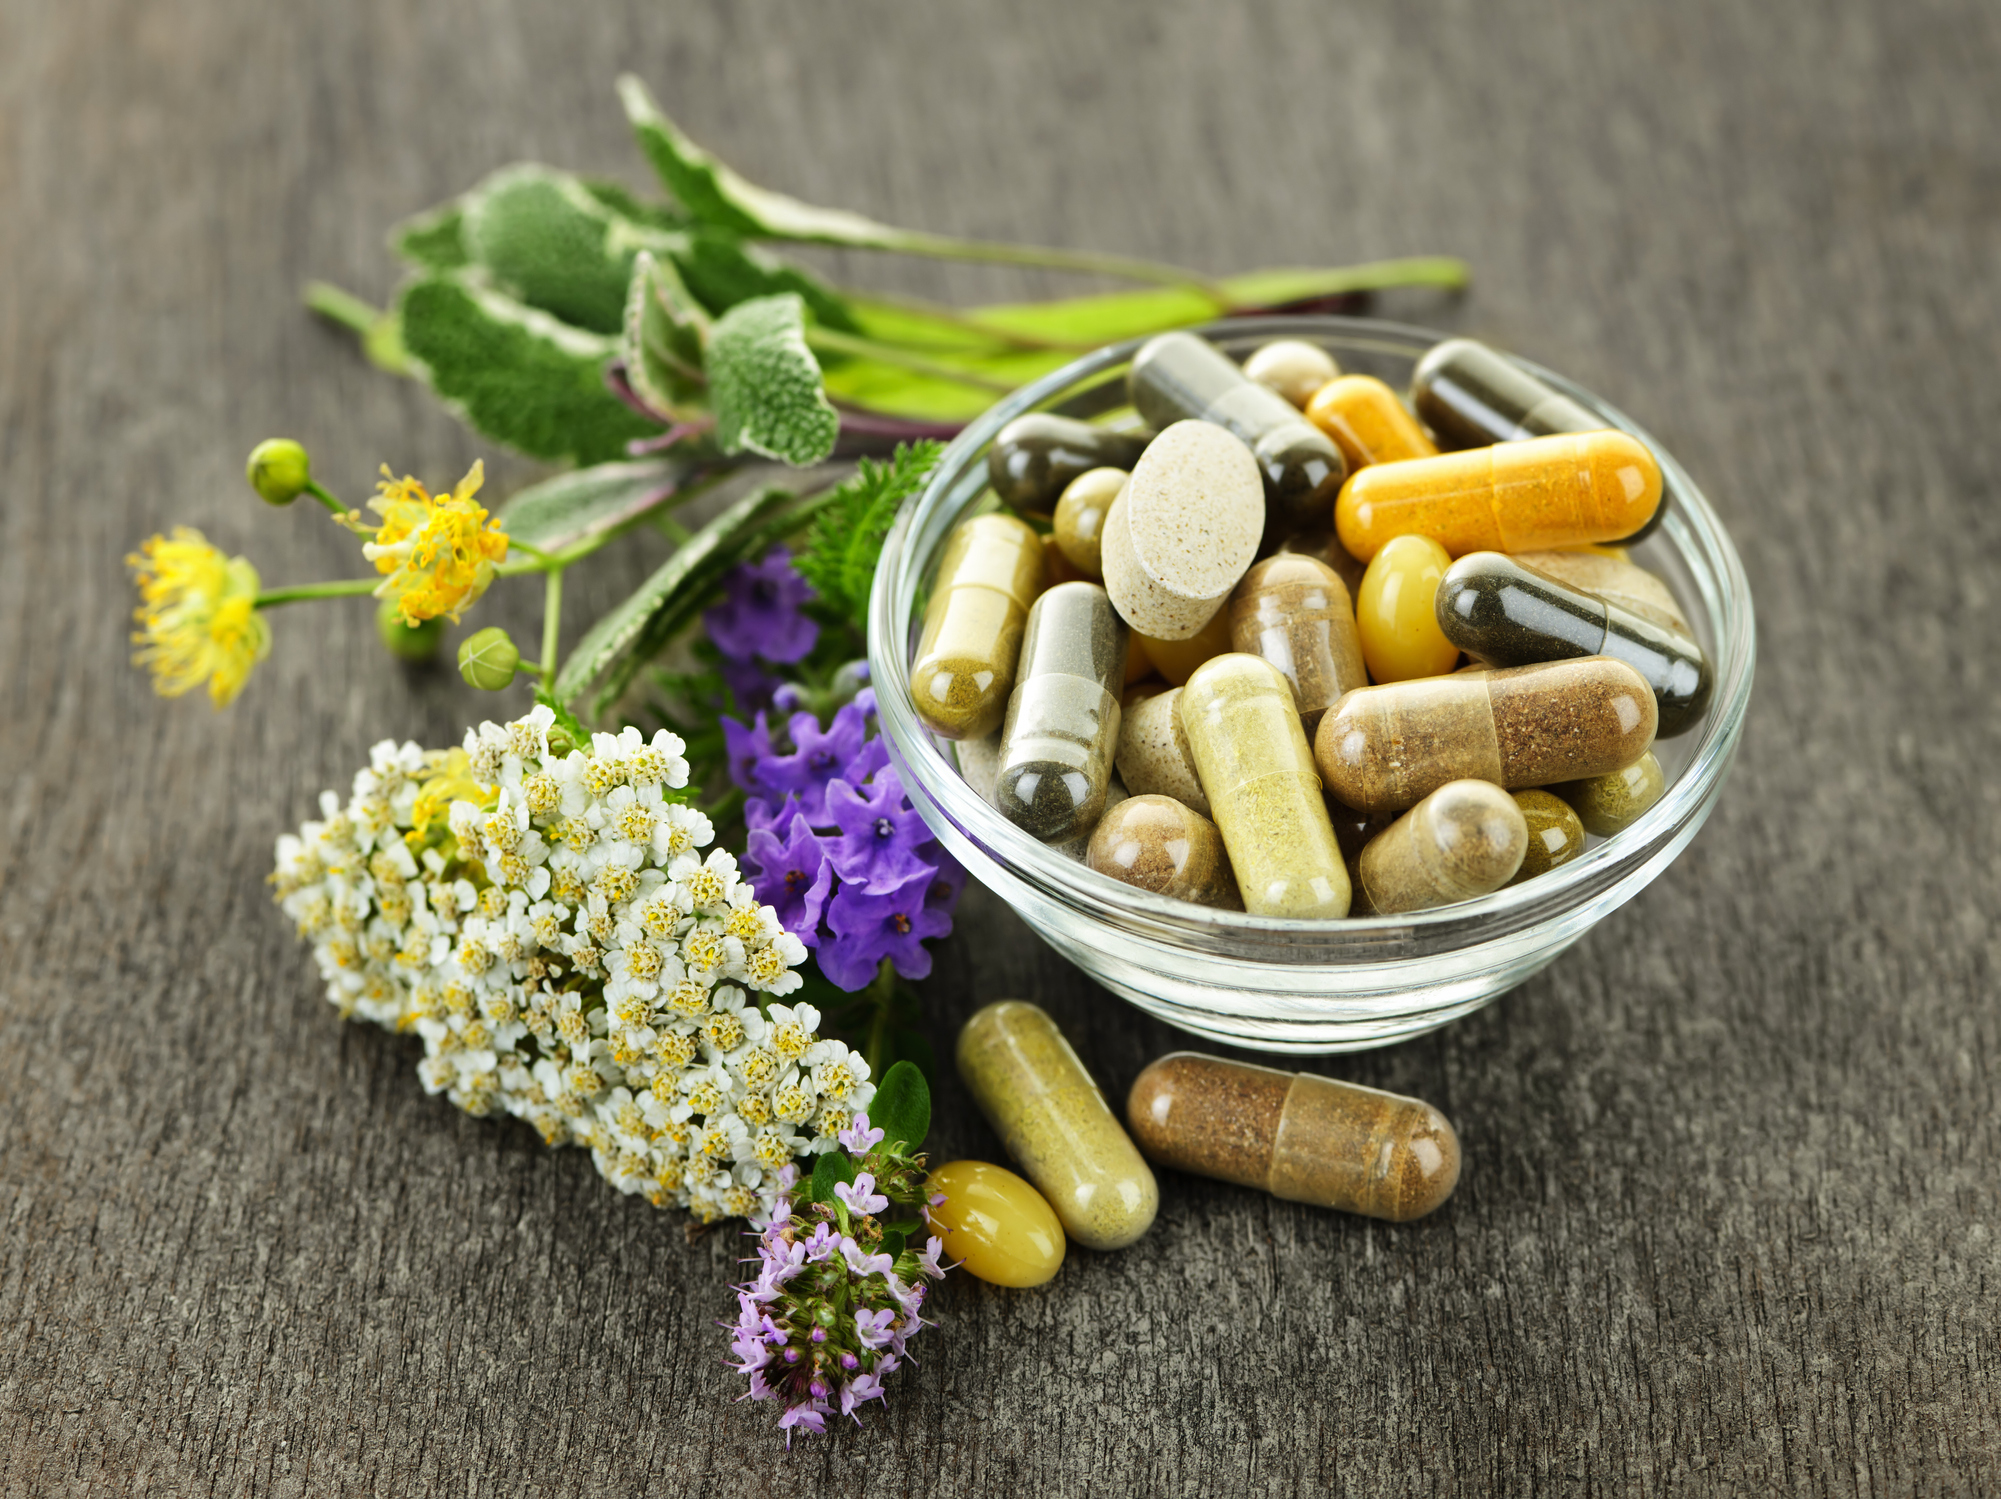 Natural therapies for brain health and Parkinson's